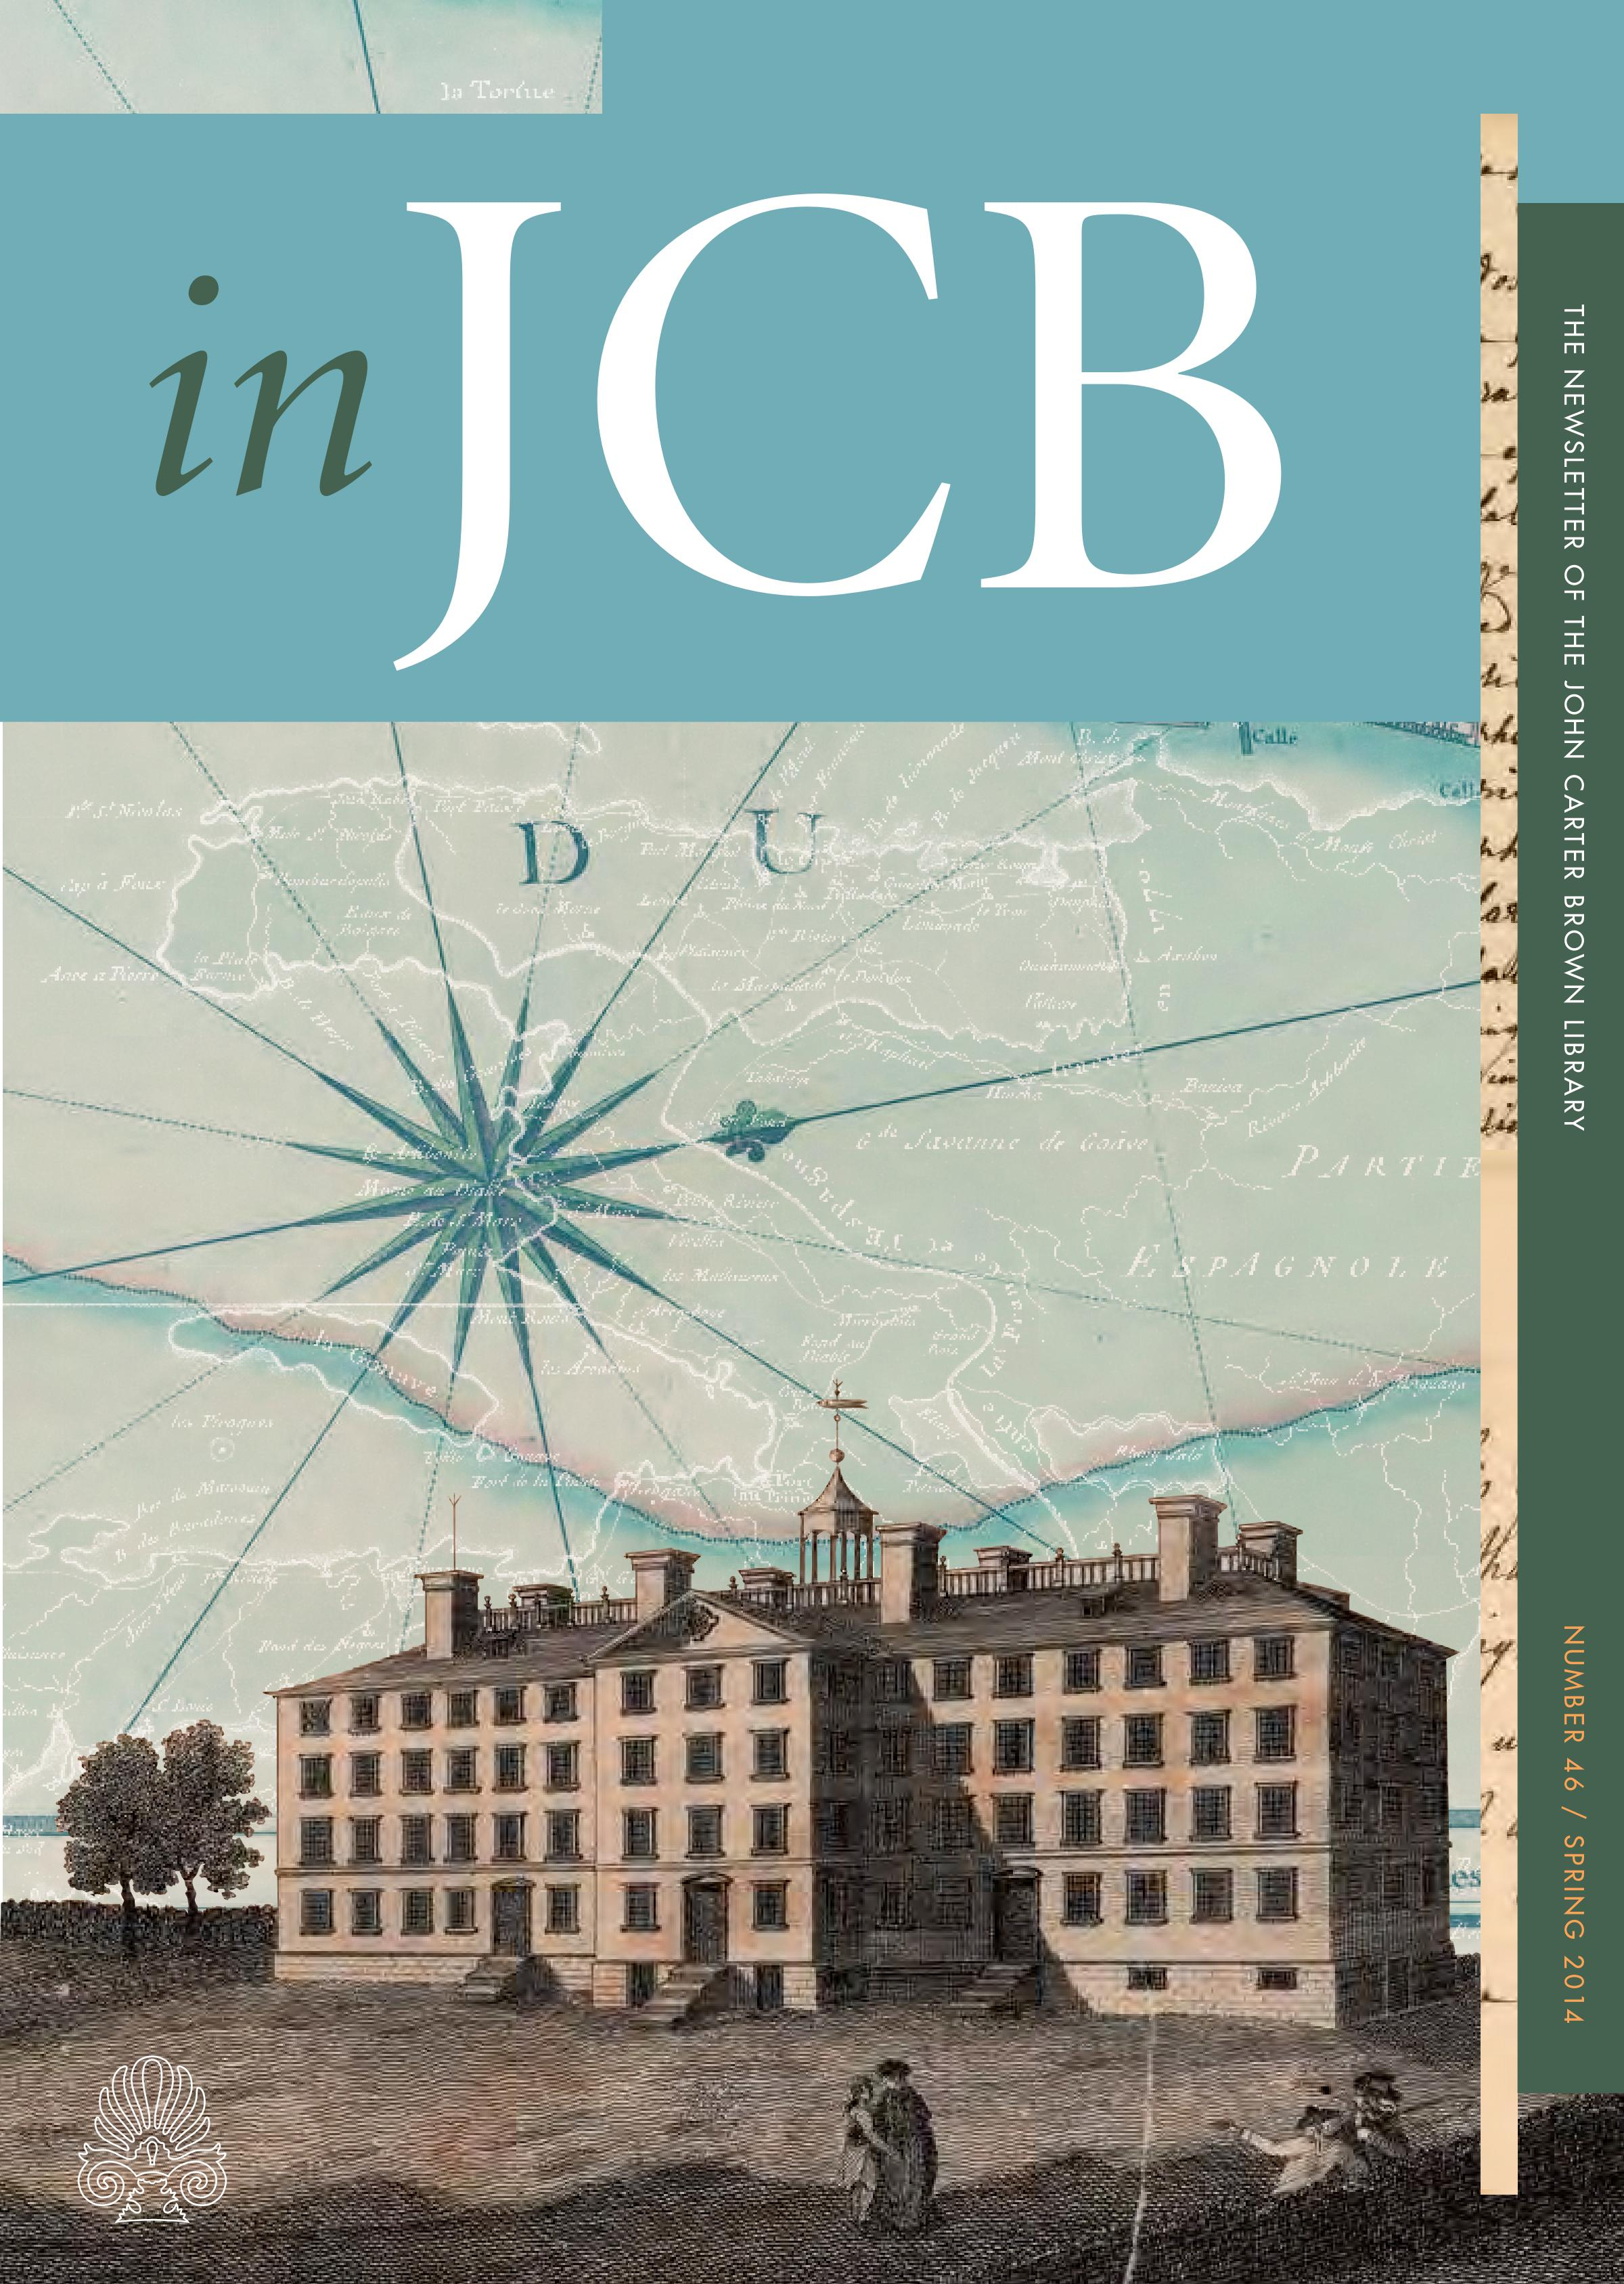 colorful cover of the In JCB newsletter, showing a large building in the foreground and a compass rose and map in the background